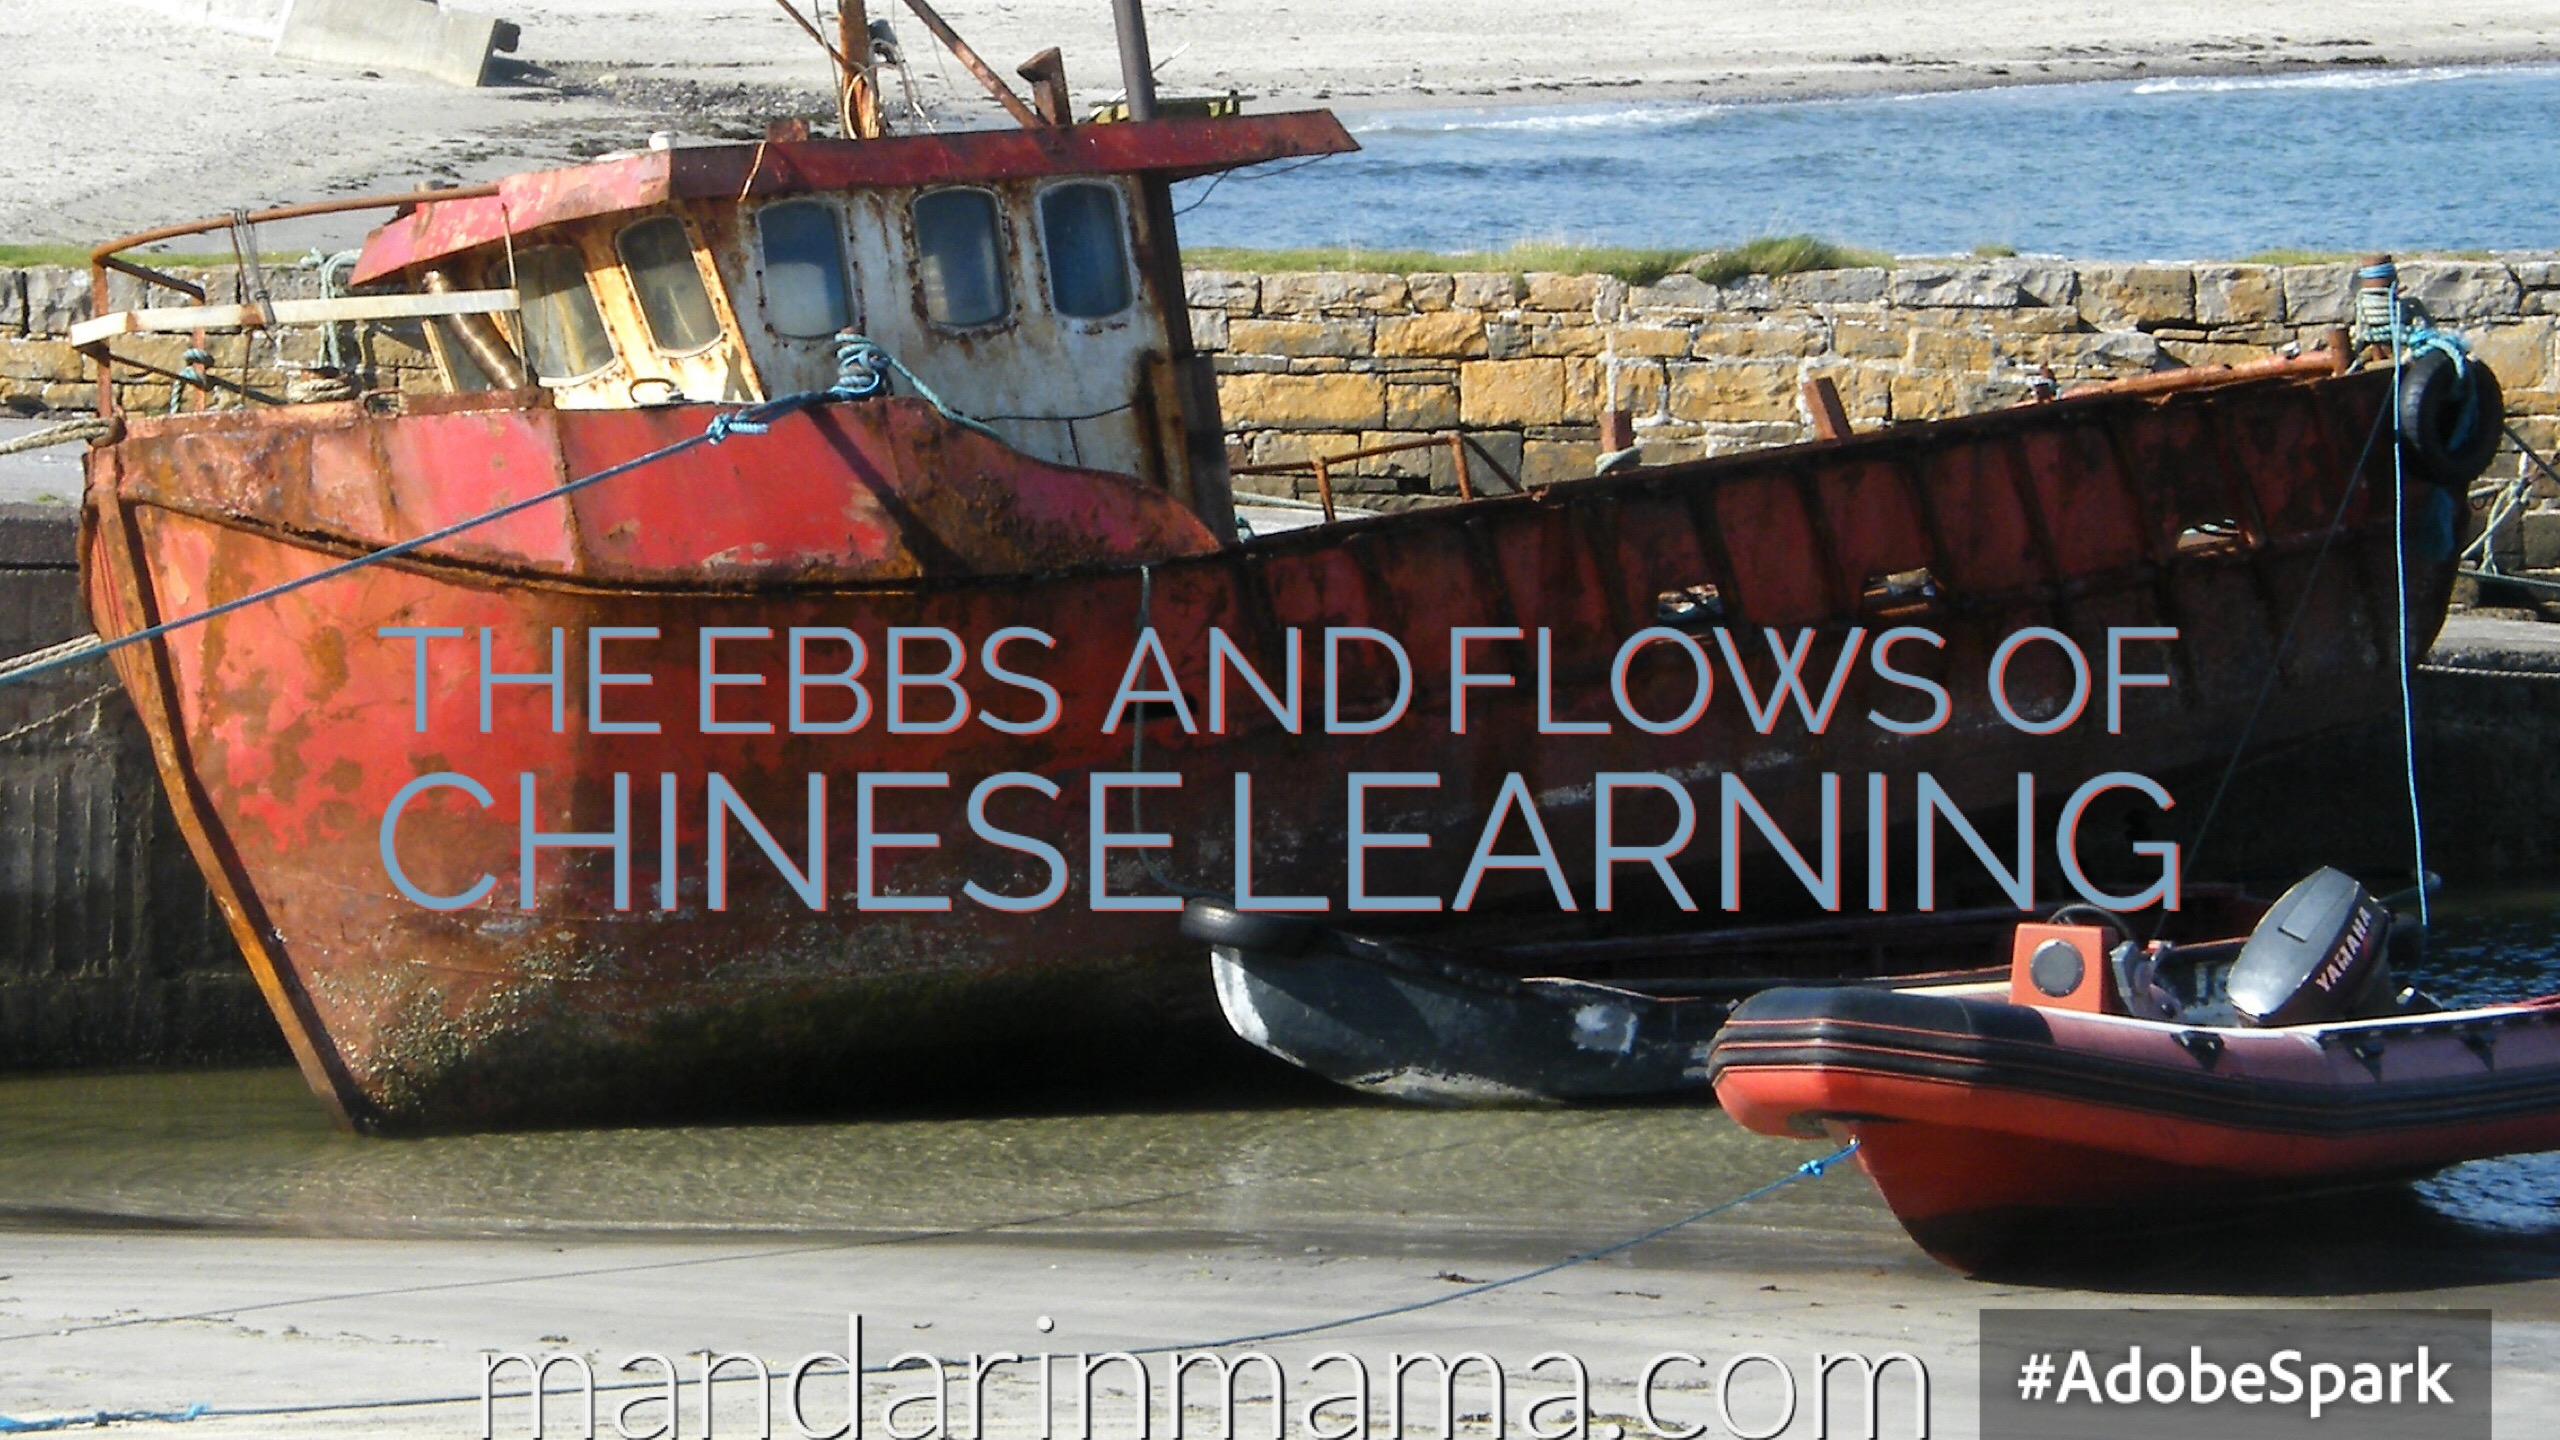 The Ebbs and Flows of Chinese Learning